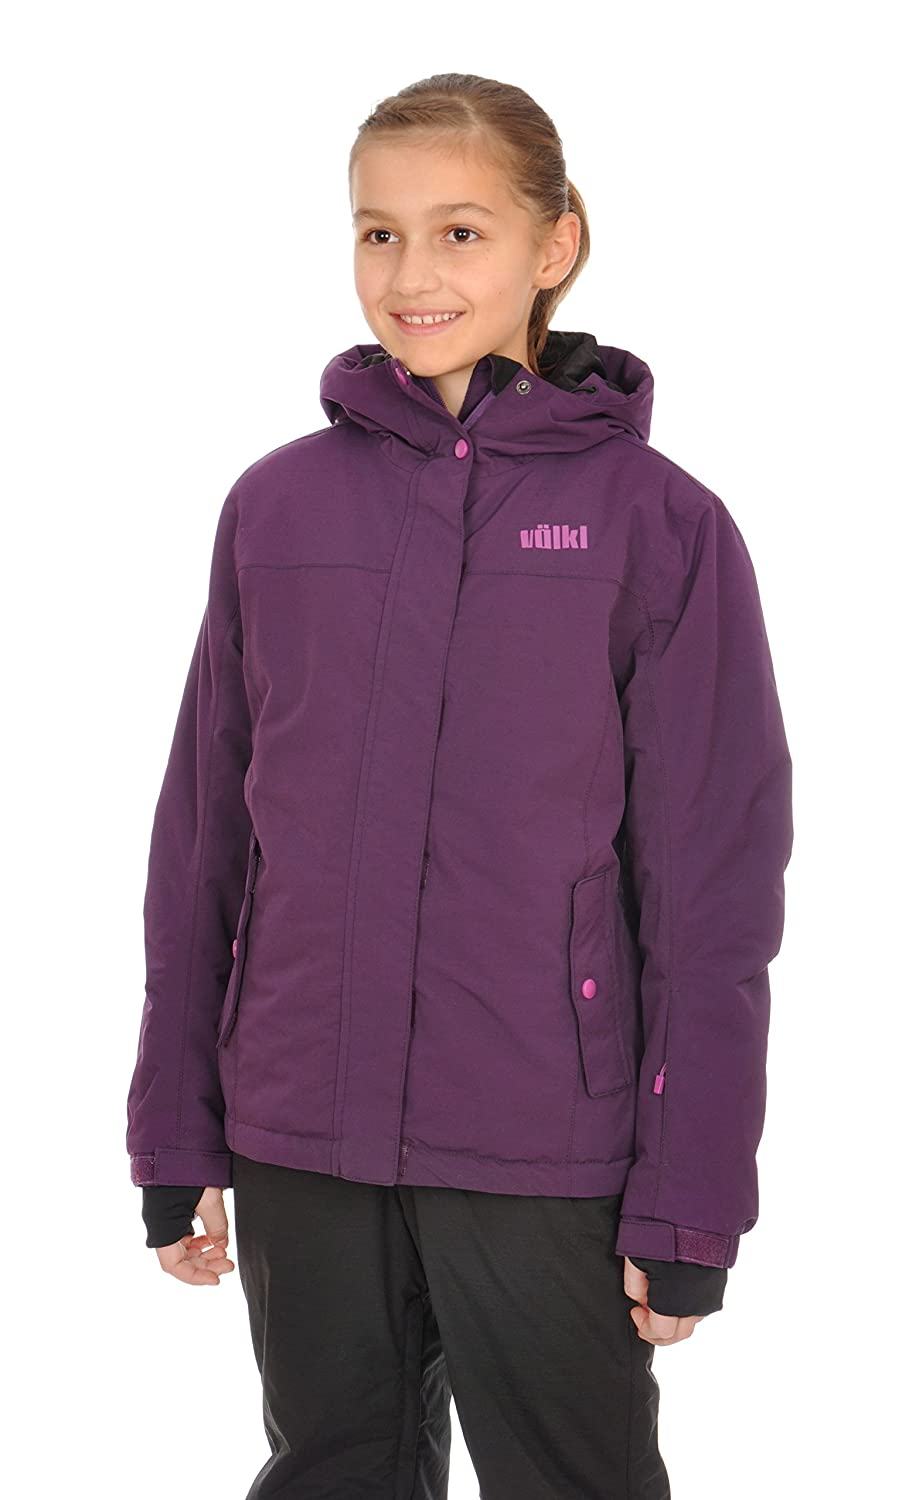 Völkl Performance Wear Kinder Skijacke Starlet Jacket